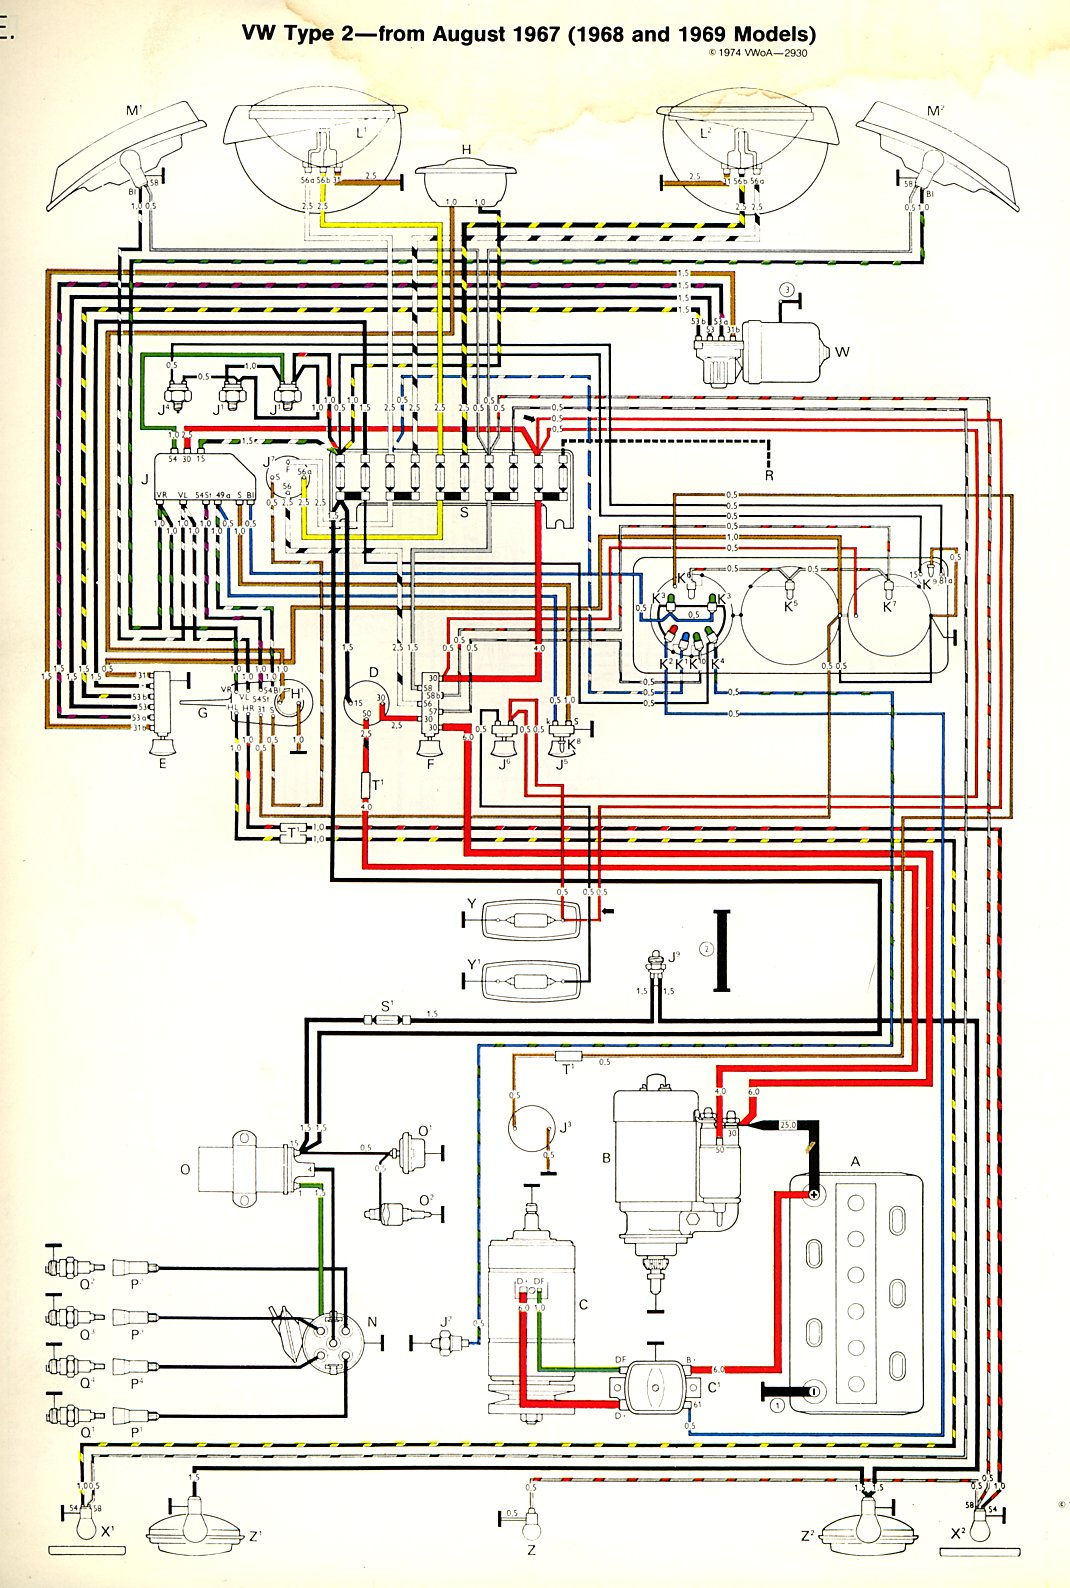 bus wiring diagram com type wiring diagrams c bus wiring diagram Minneapolis Moline Wiring Diagrams com type wiring diagrams 1968 to vin 2x8098285 unfused schematic highlight